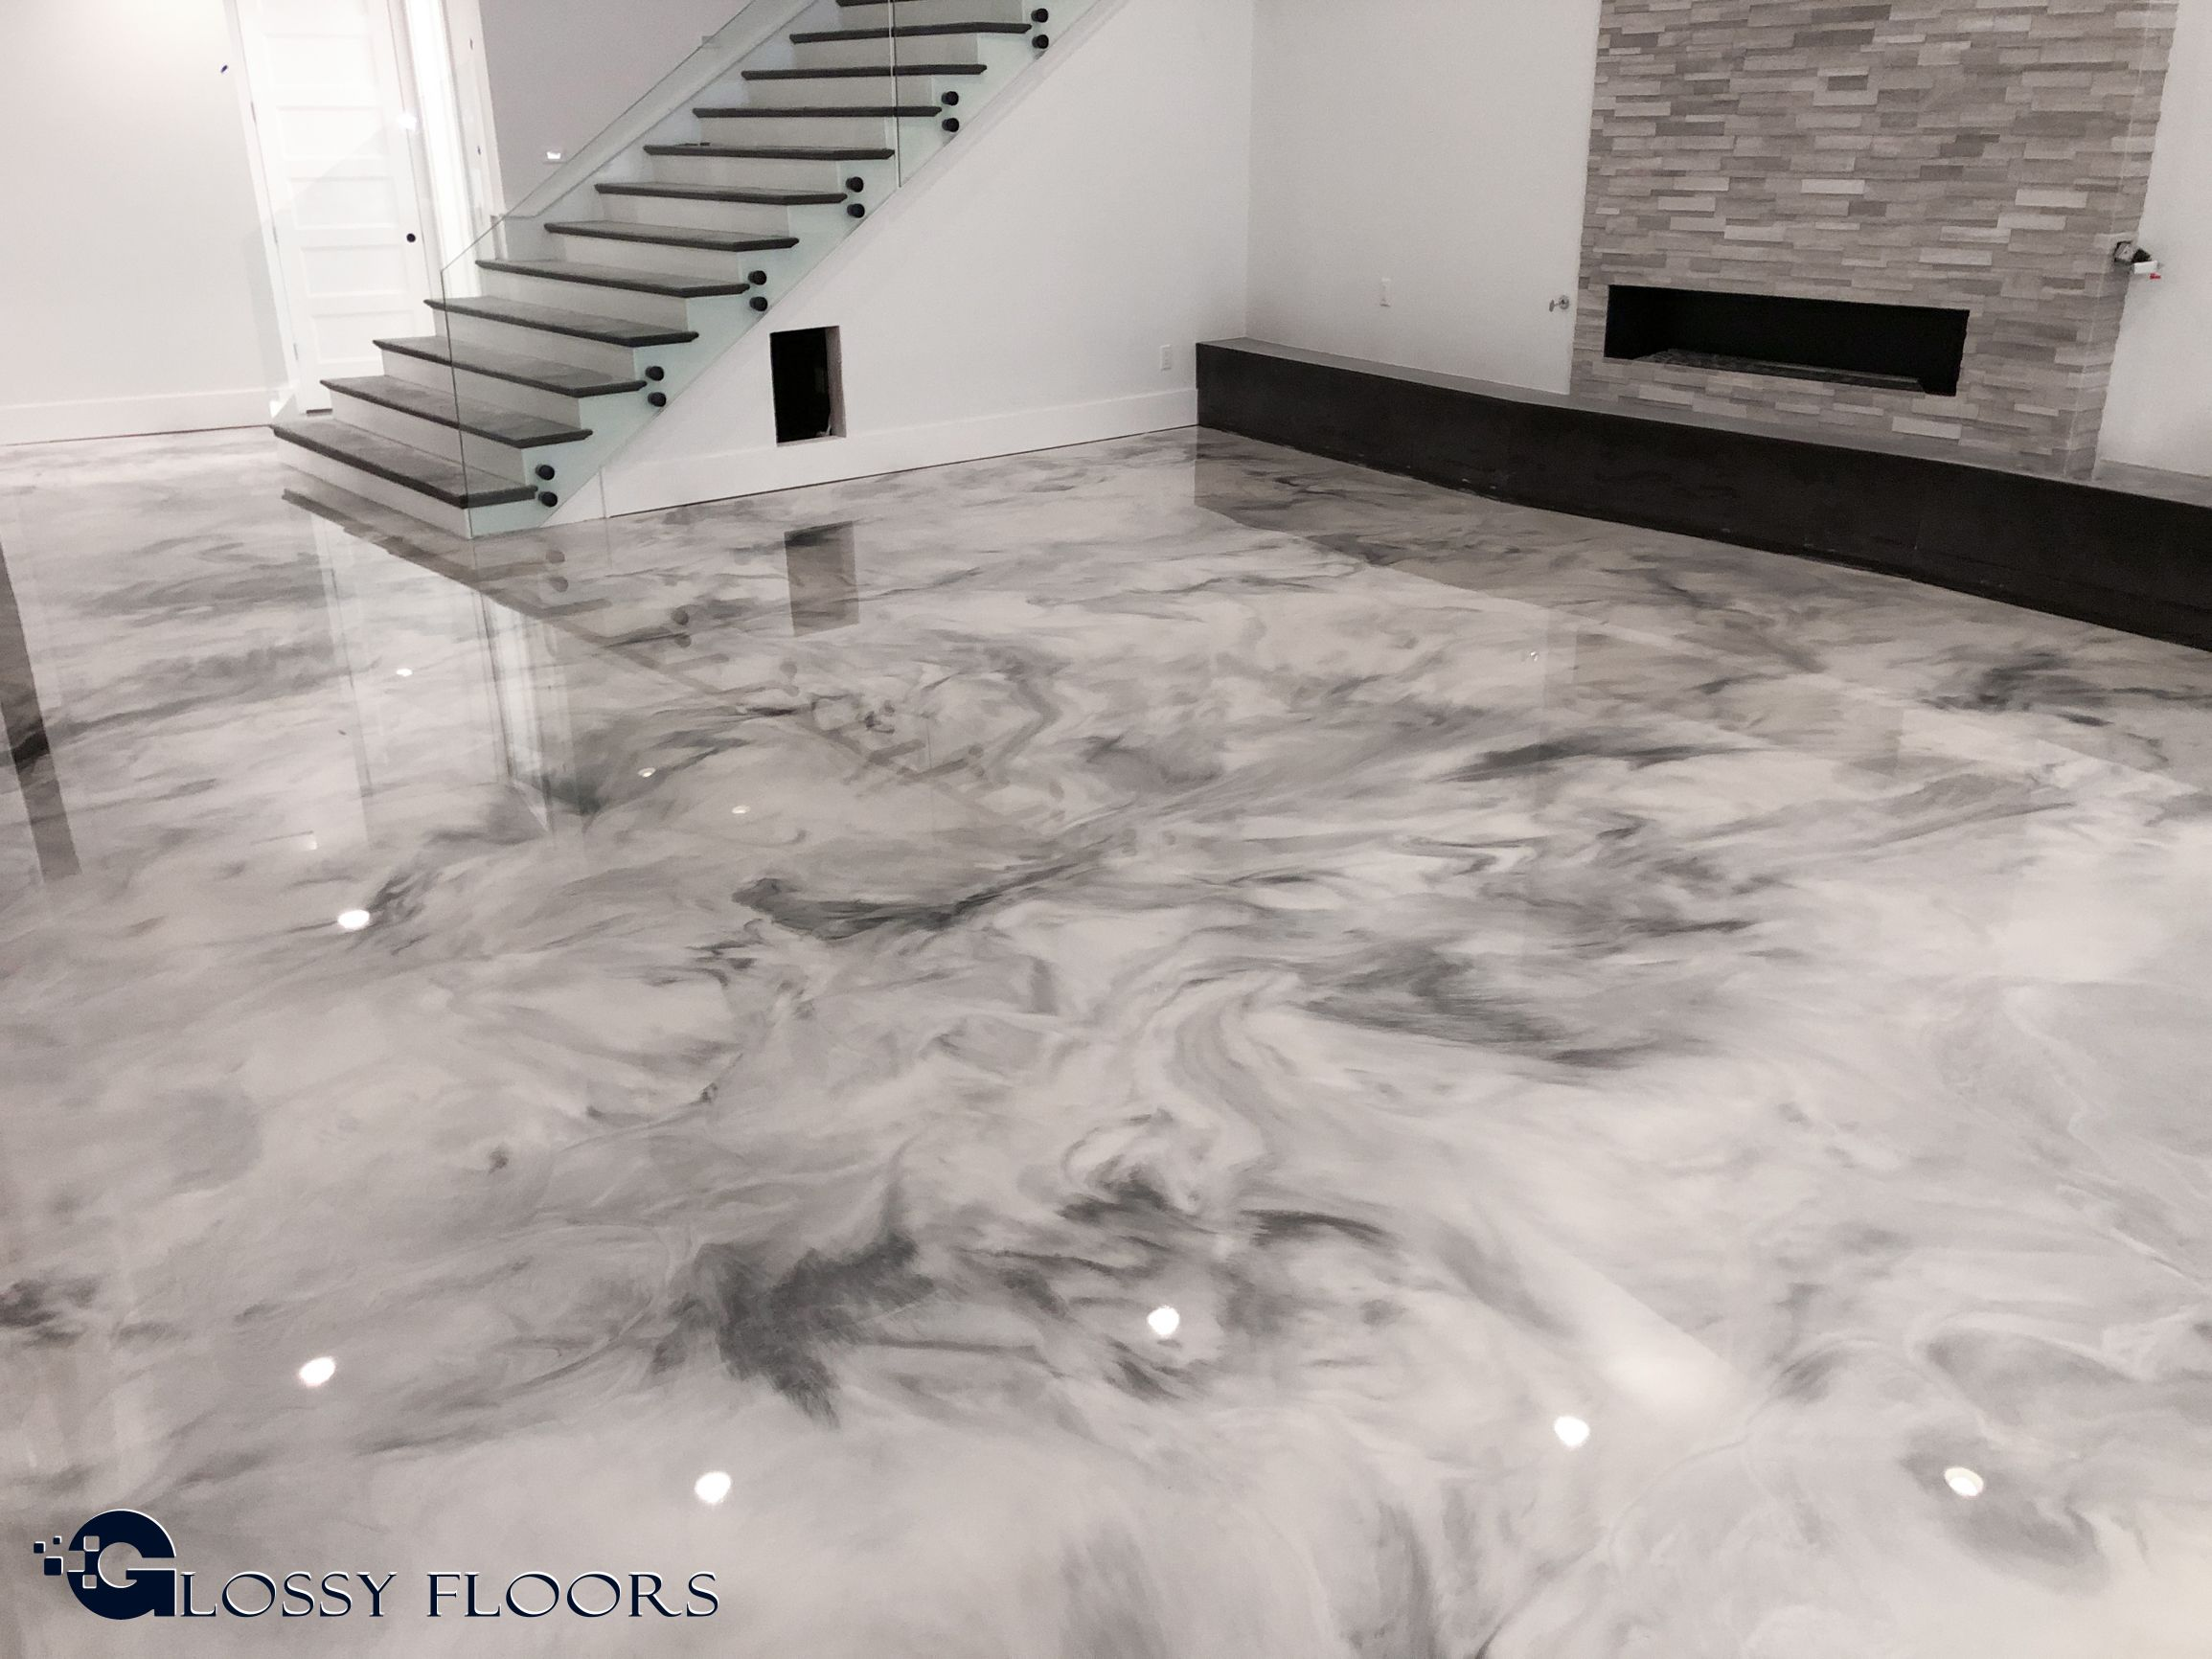 Metallic Marble Epoxy Floors From Glossy Floors Are Truly Unique This Particular Floor Is Unique In Th Epoxy Floor Epoxy Floor Basement Marble Flooring Design